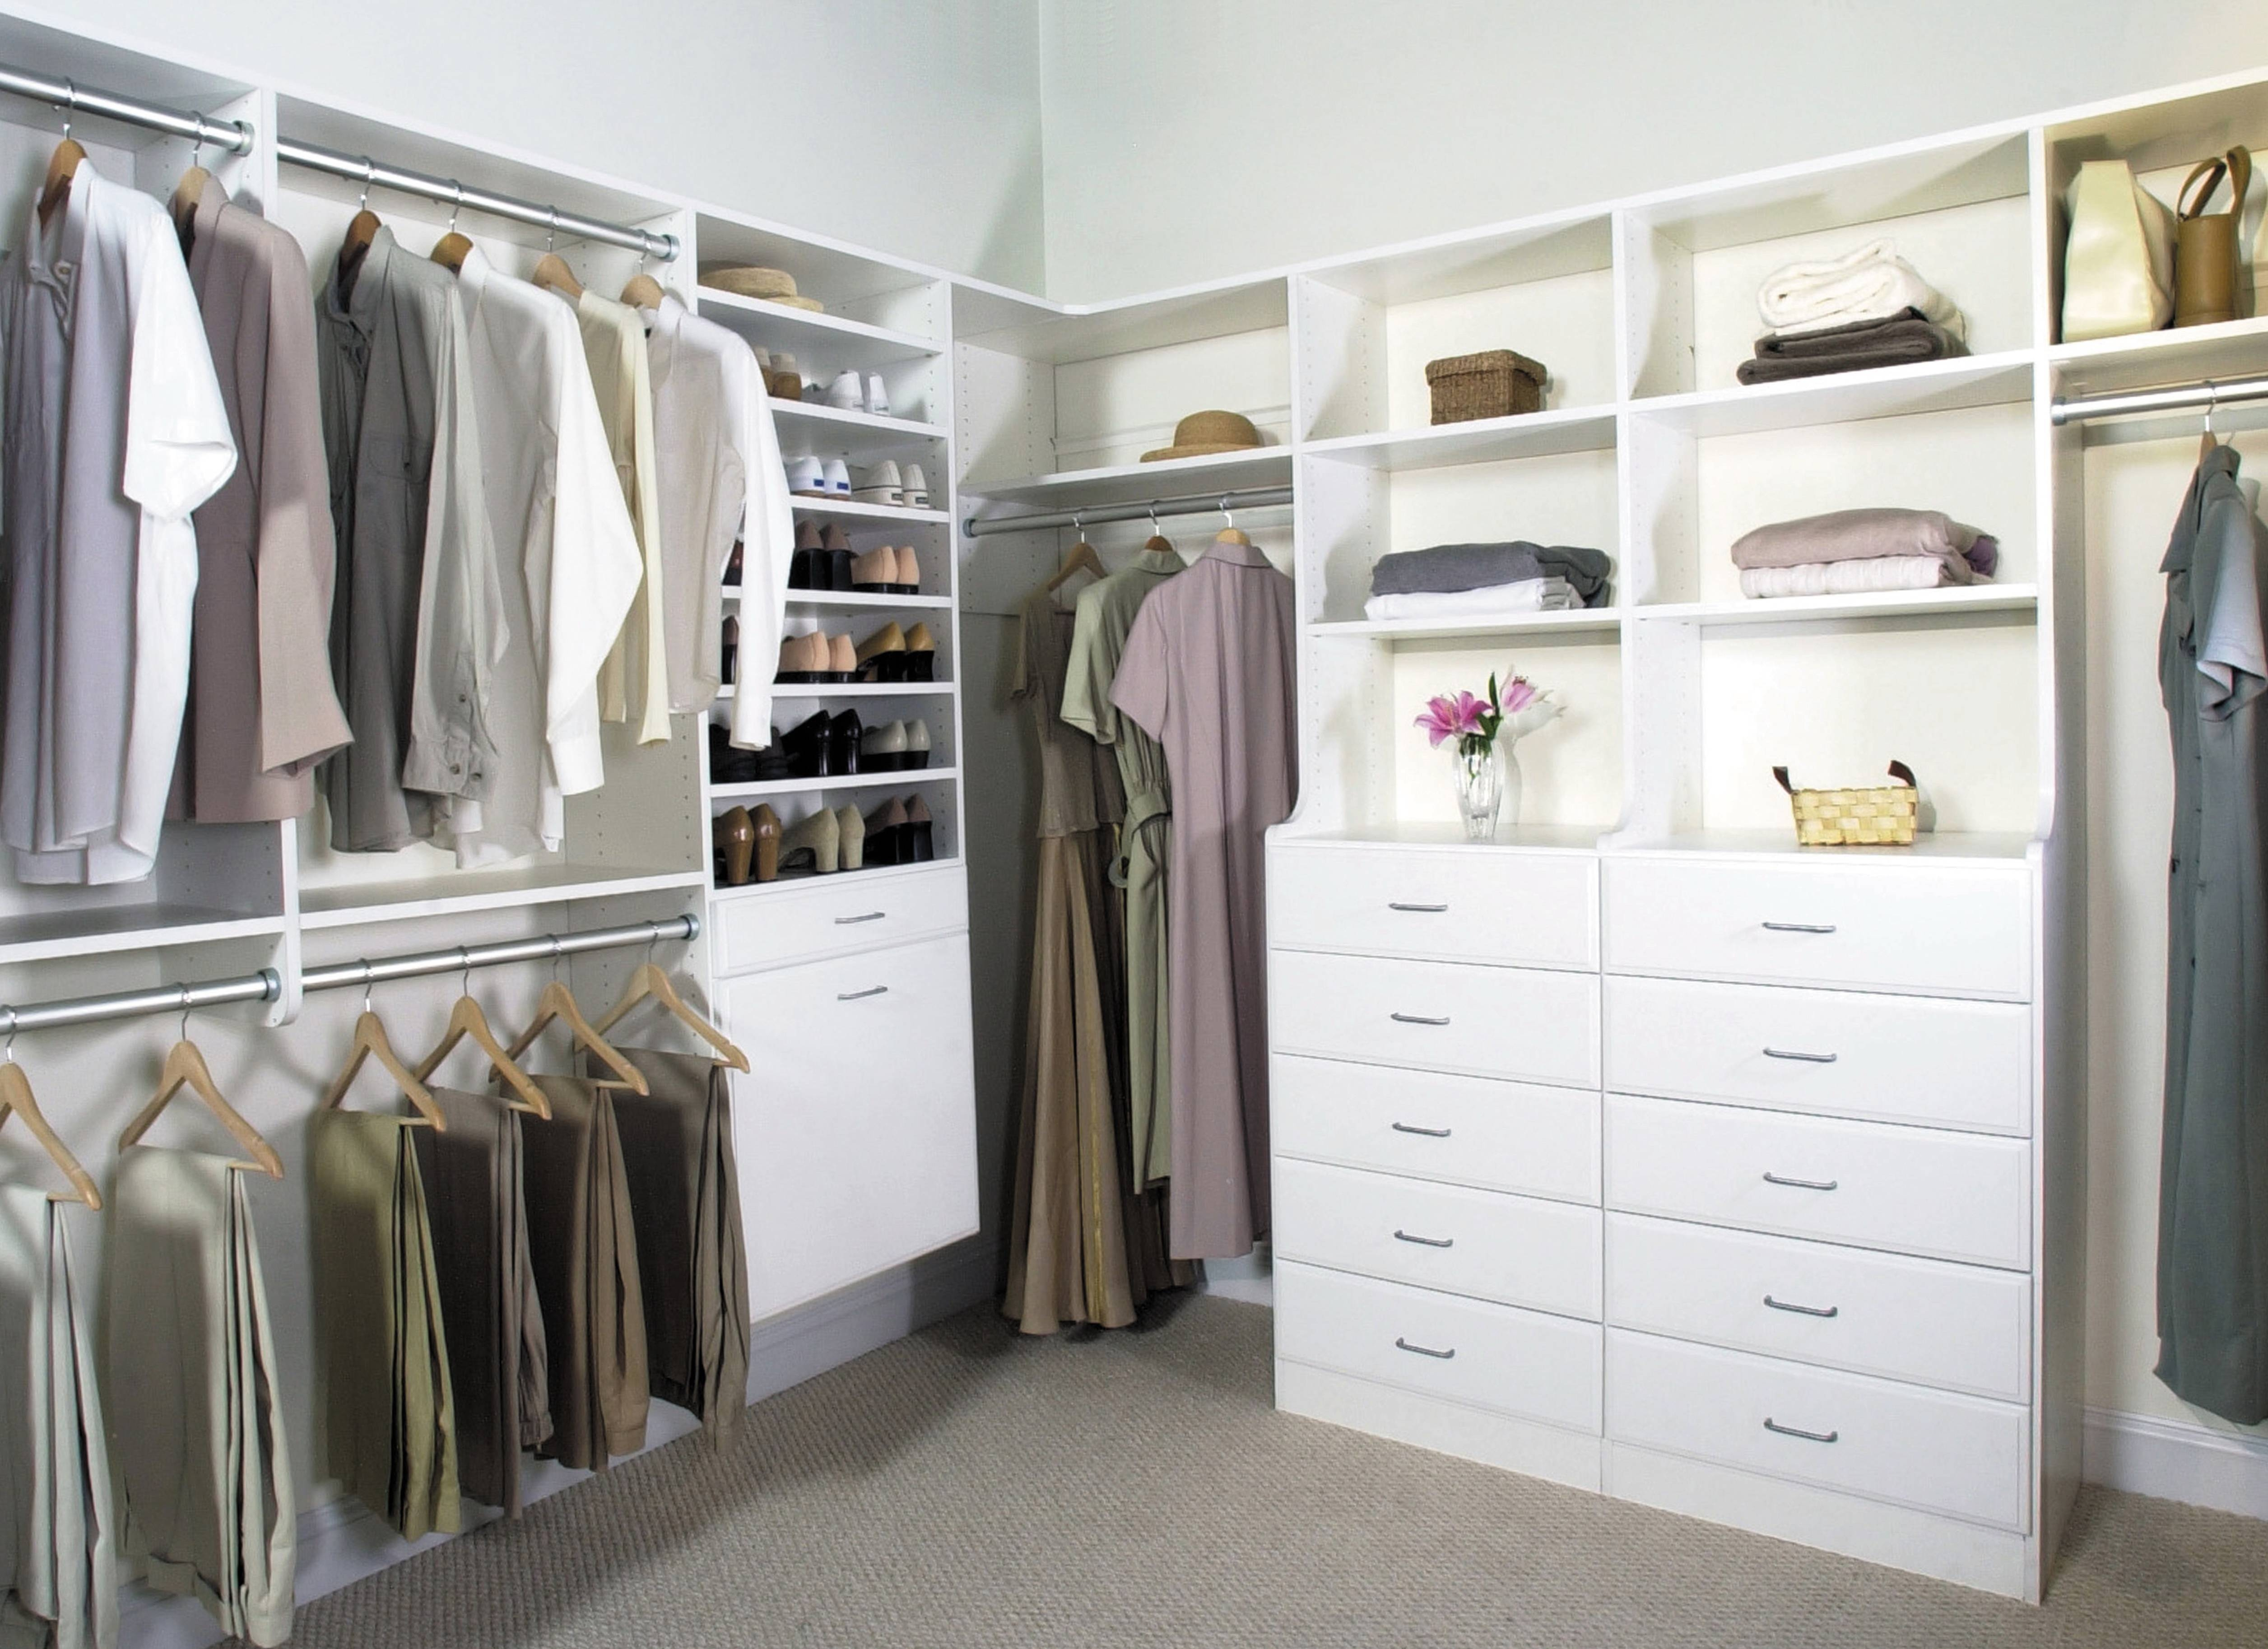 Wardrobe Closet Ikea | Roselawnlutheran intended for Corner Wardrobe Closet Ikea (Image 22 of 30)